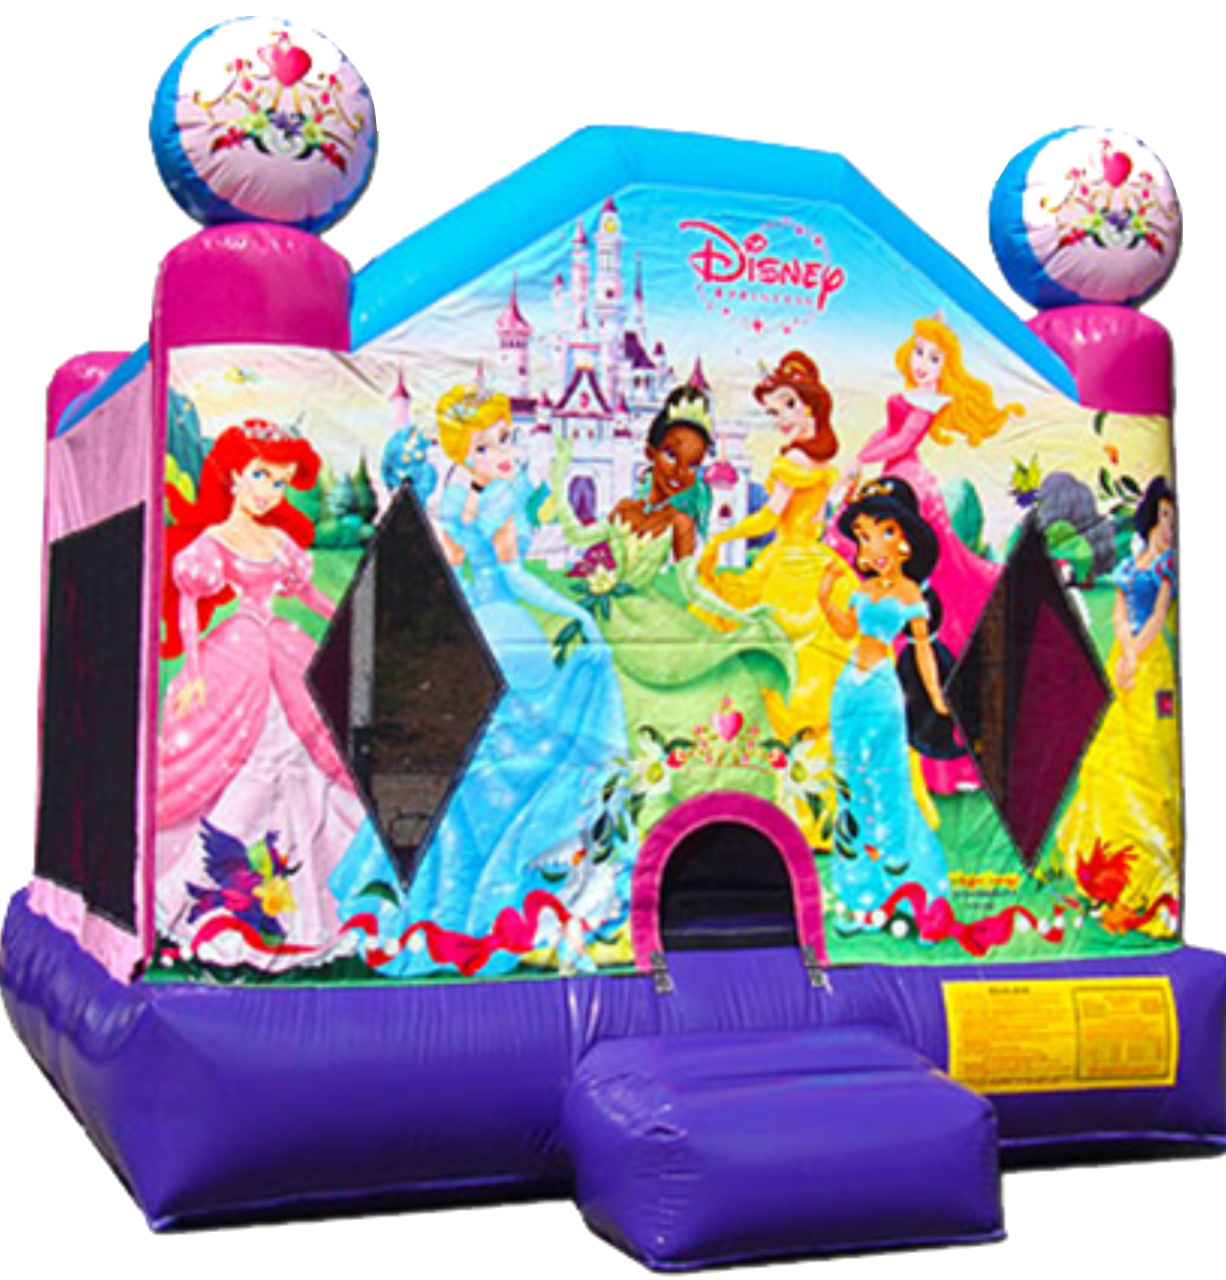 Disney Princess Bounce House rentals Murfreesboro